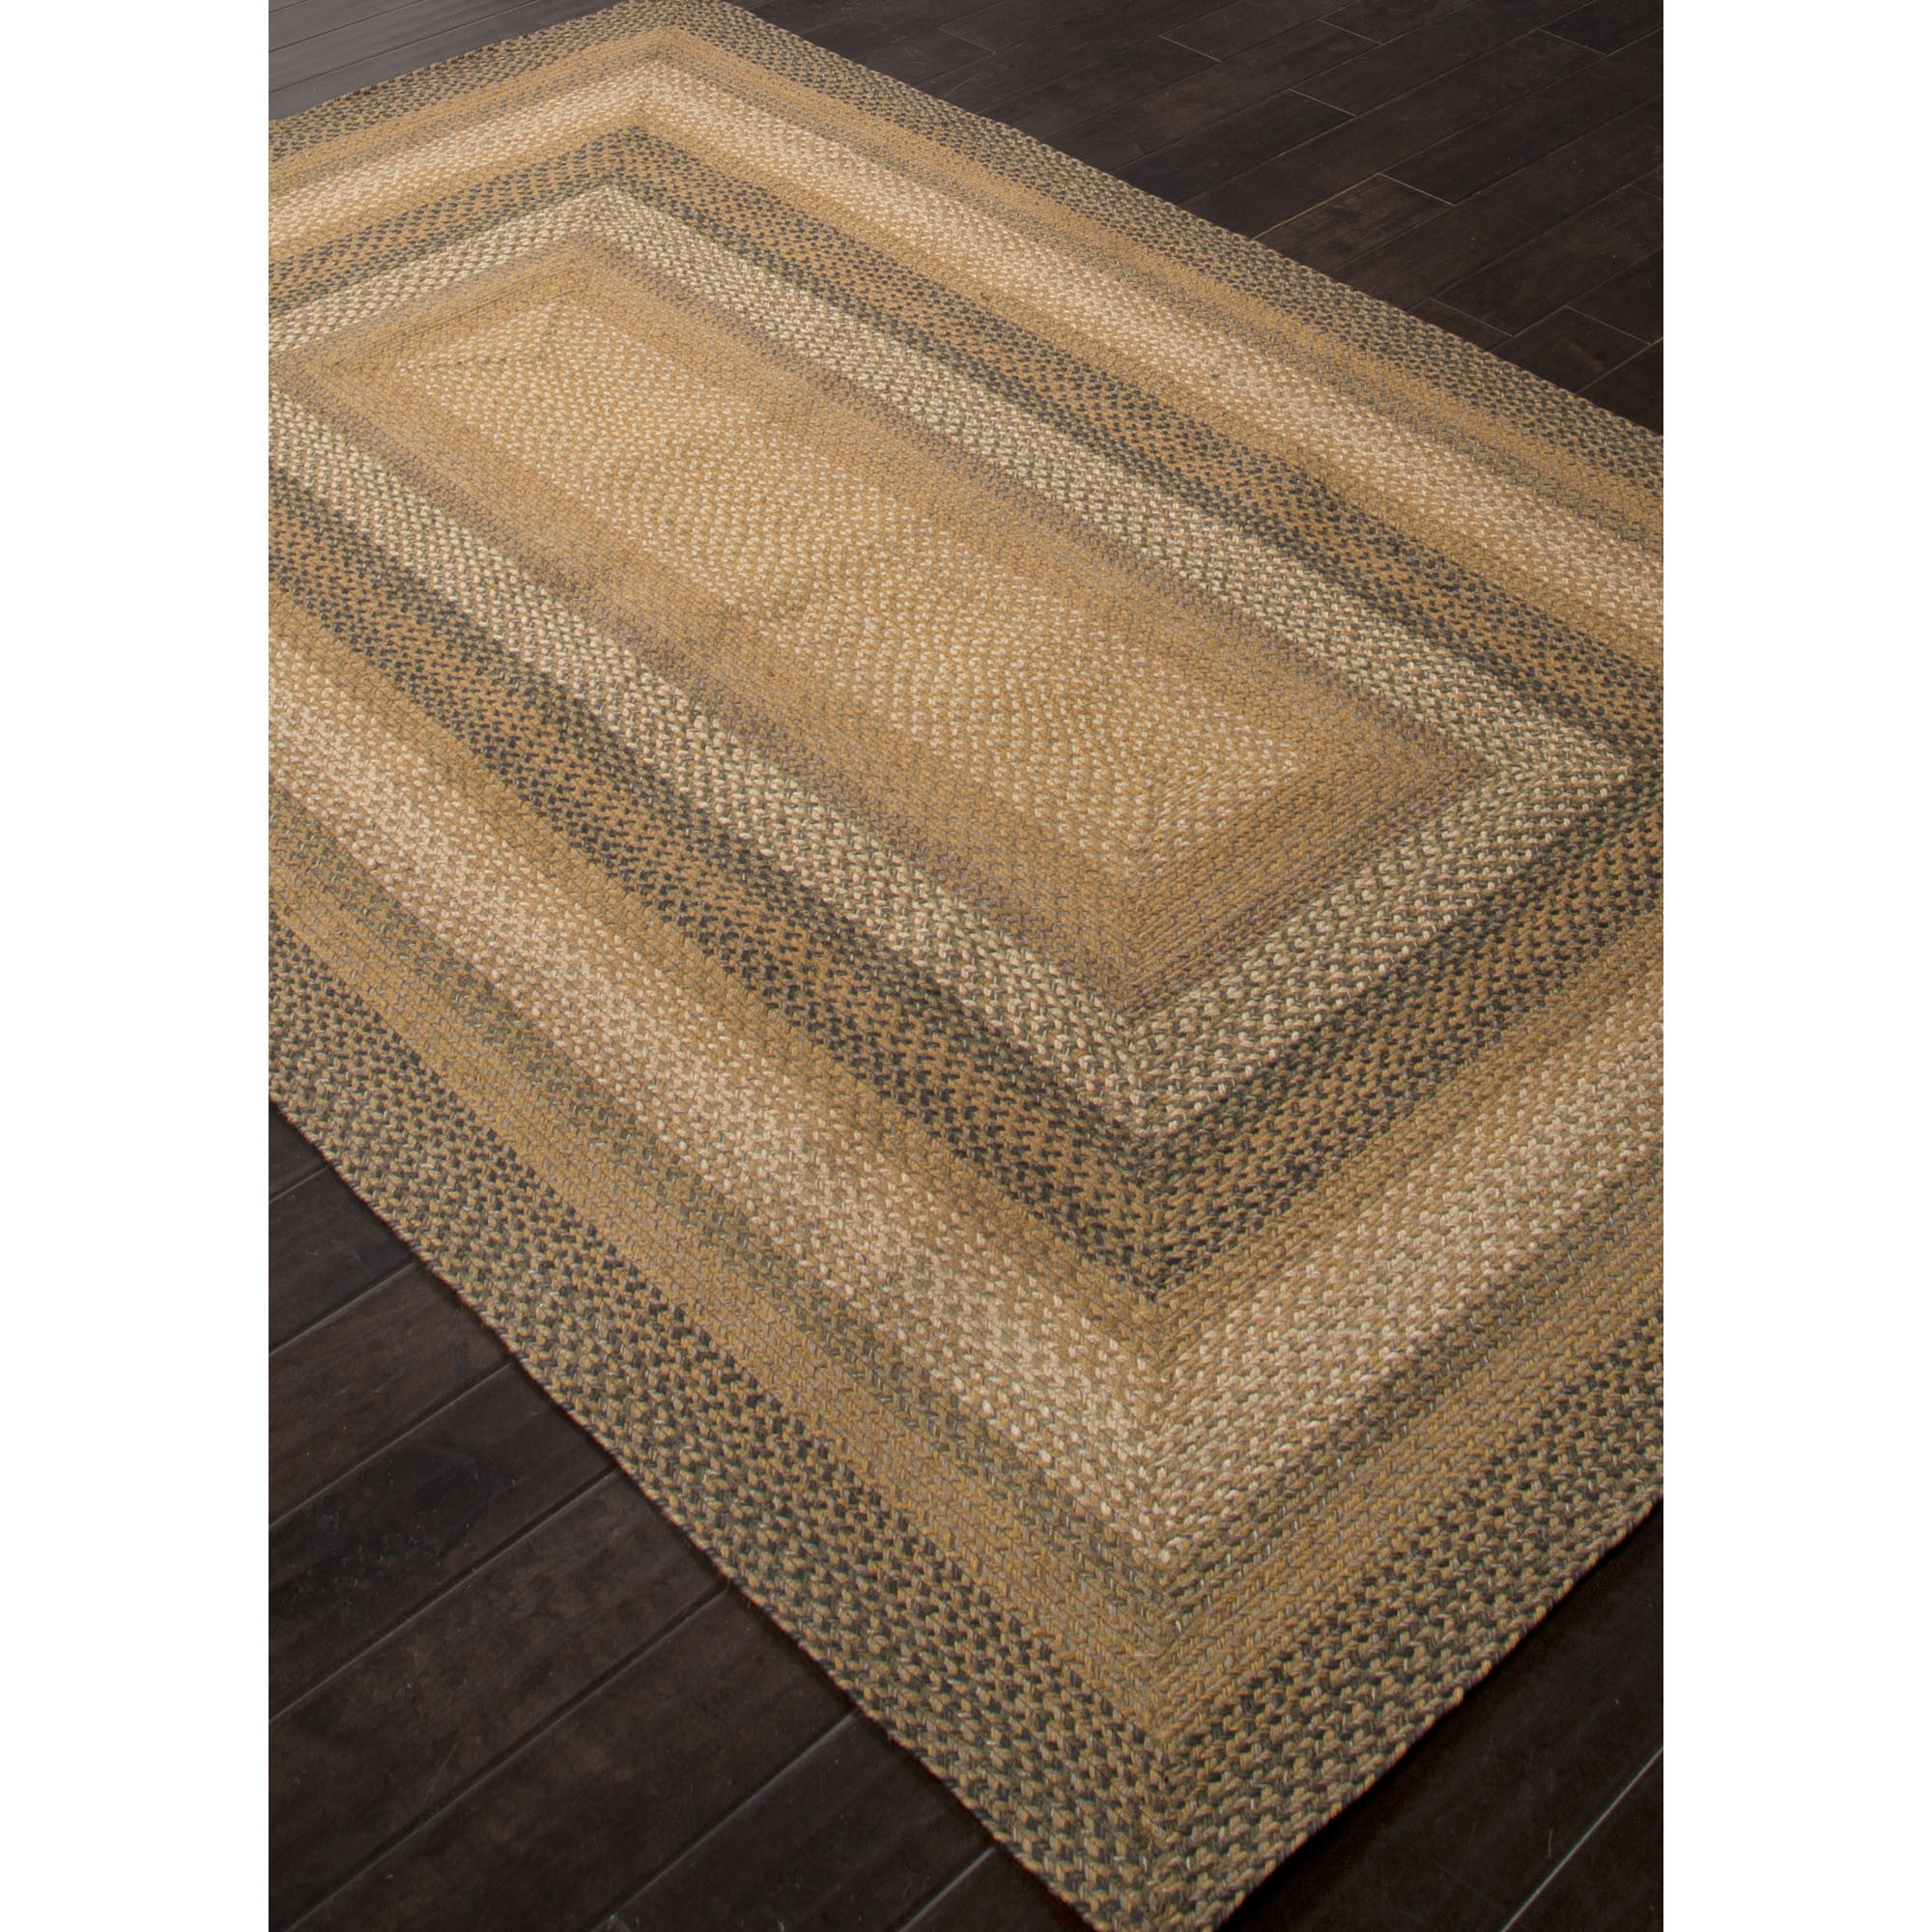 Jaipur Rugs Braided Solid Pattern Taupe/Green Jute And